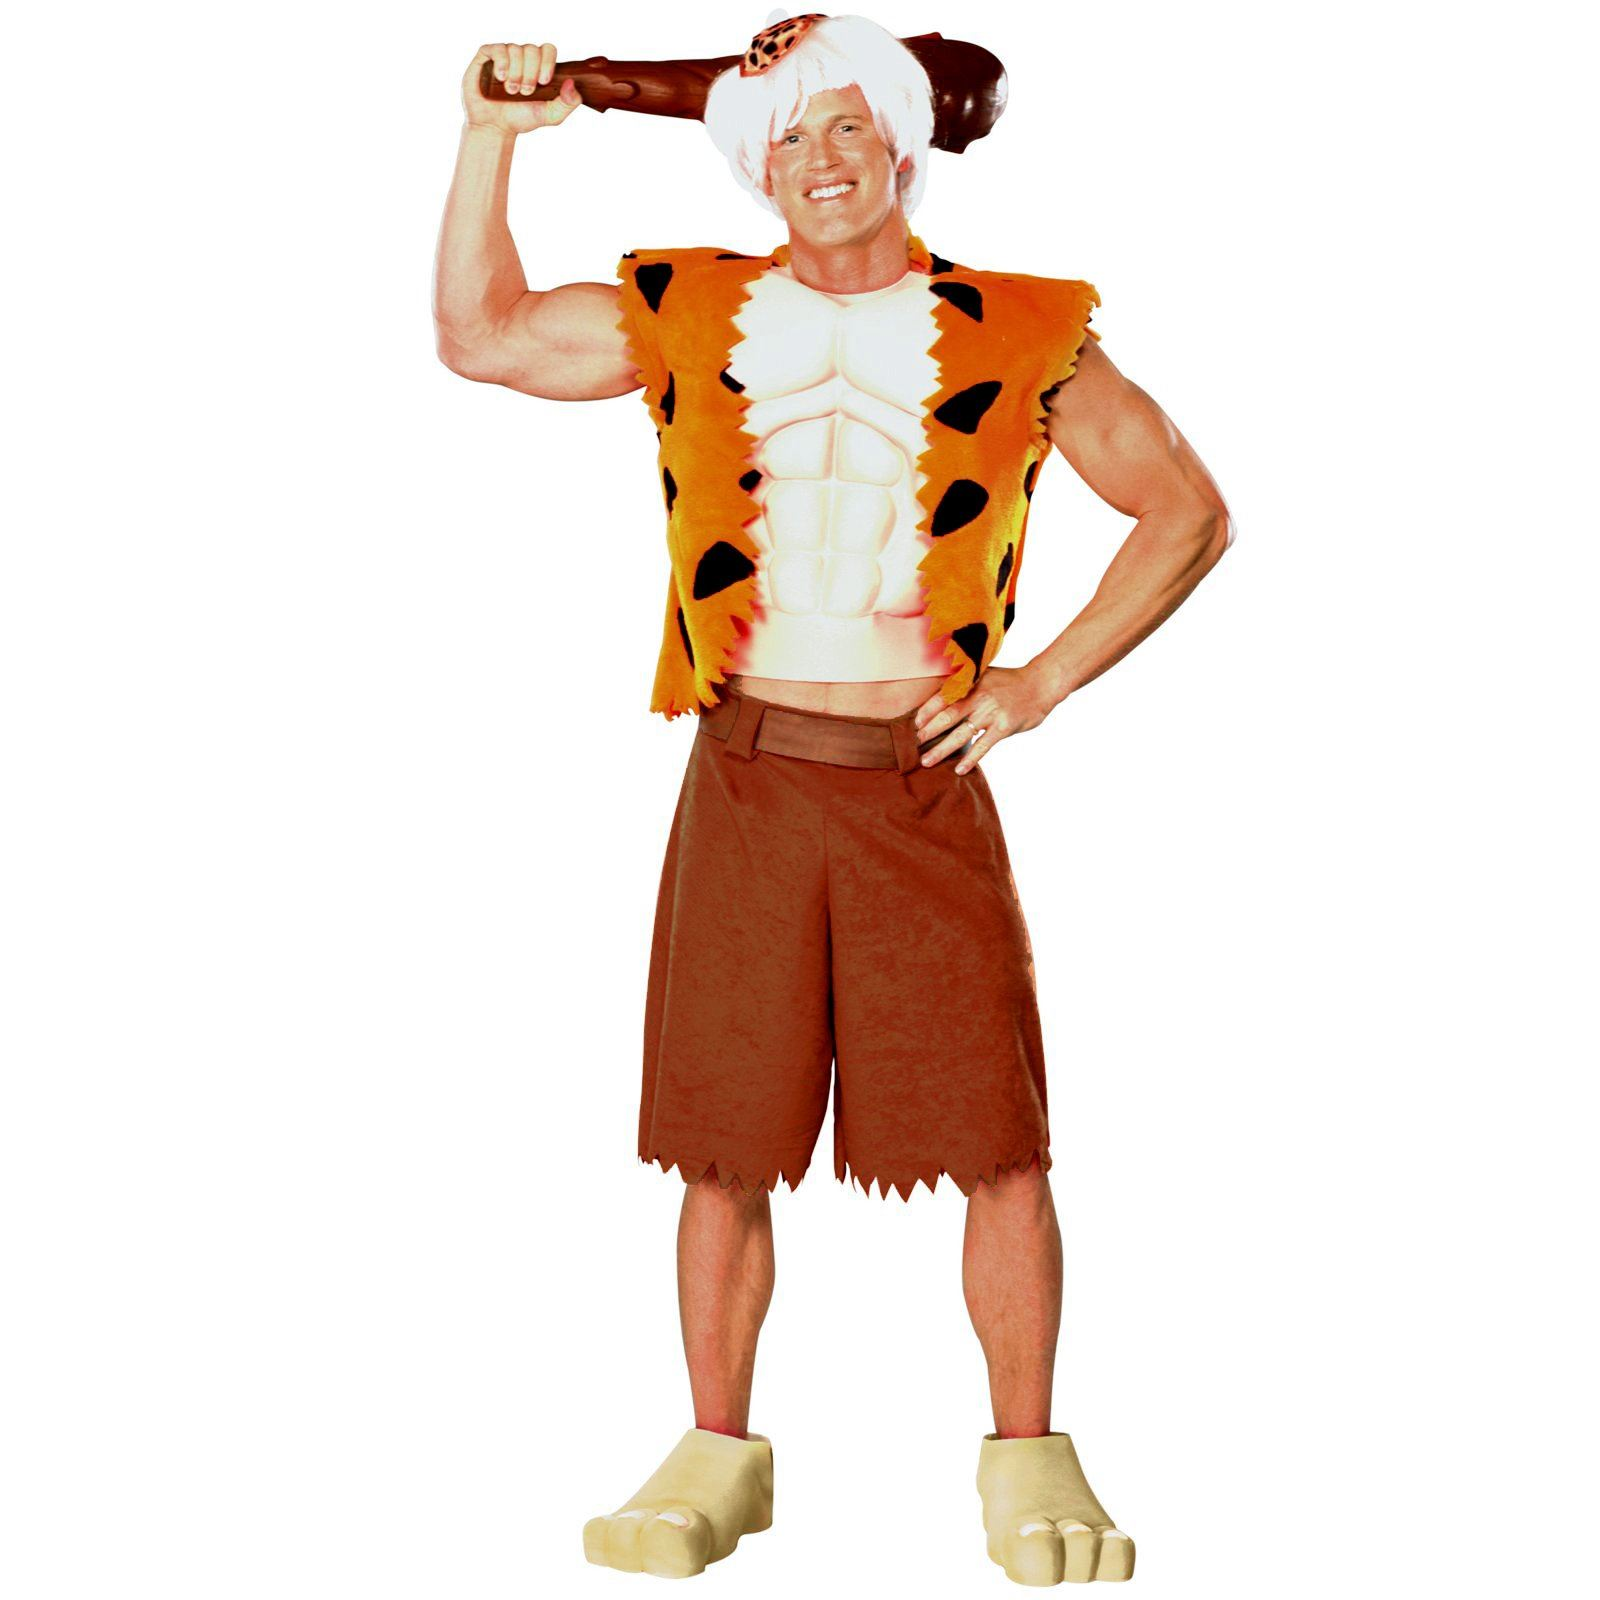 Adult Bamm Bamm Men The Flintstones Costume  sc 1 st  The Costume Land & Adult Bamm Bamm Men The Flintstones Costume | $47.99 | The Costume Land